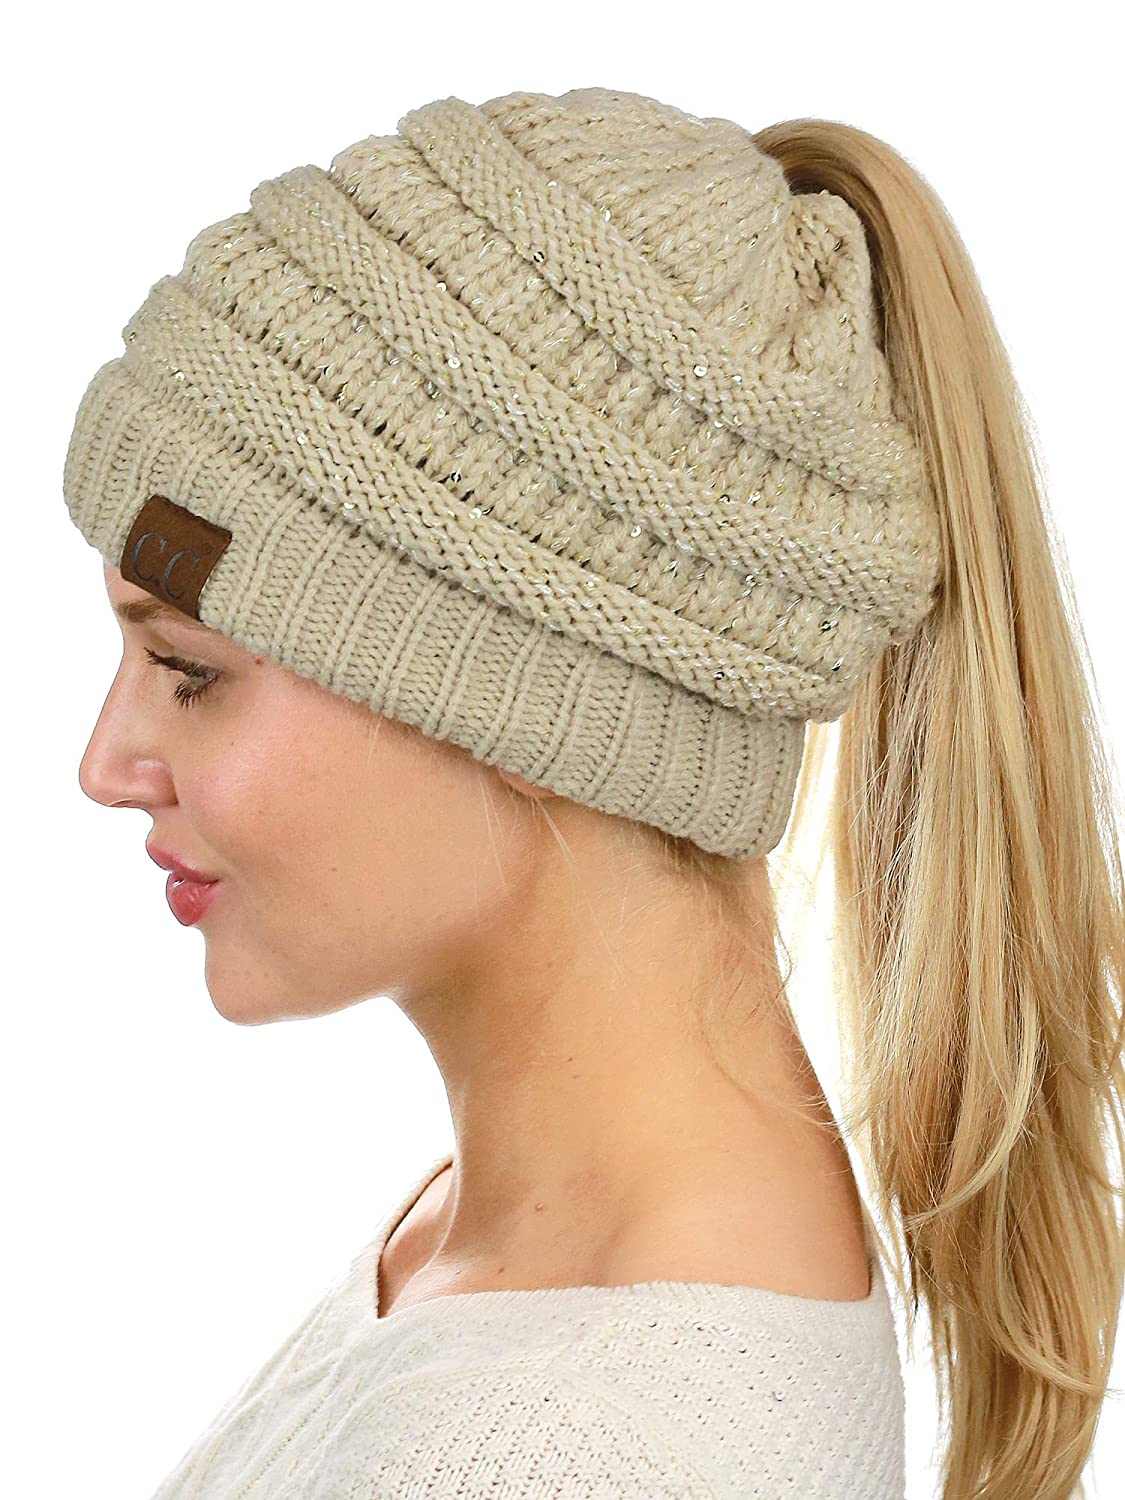 C.C BeanieTail Sparkly Sequin Cable Knit Messy High Bun Ponytail Beanie Hat ee05e1474cf